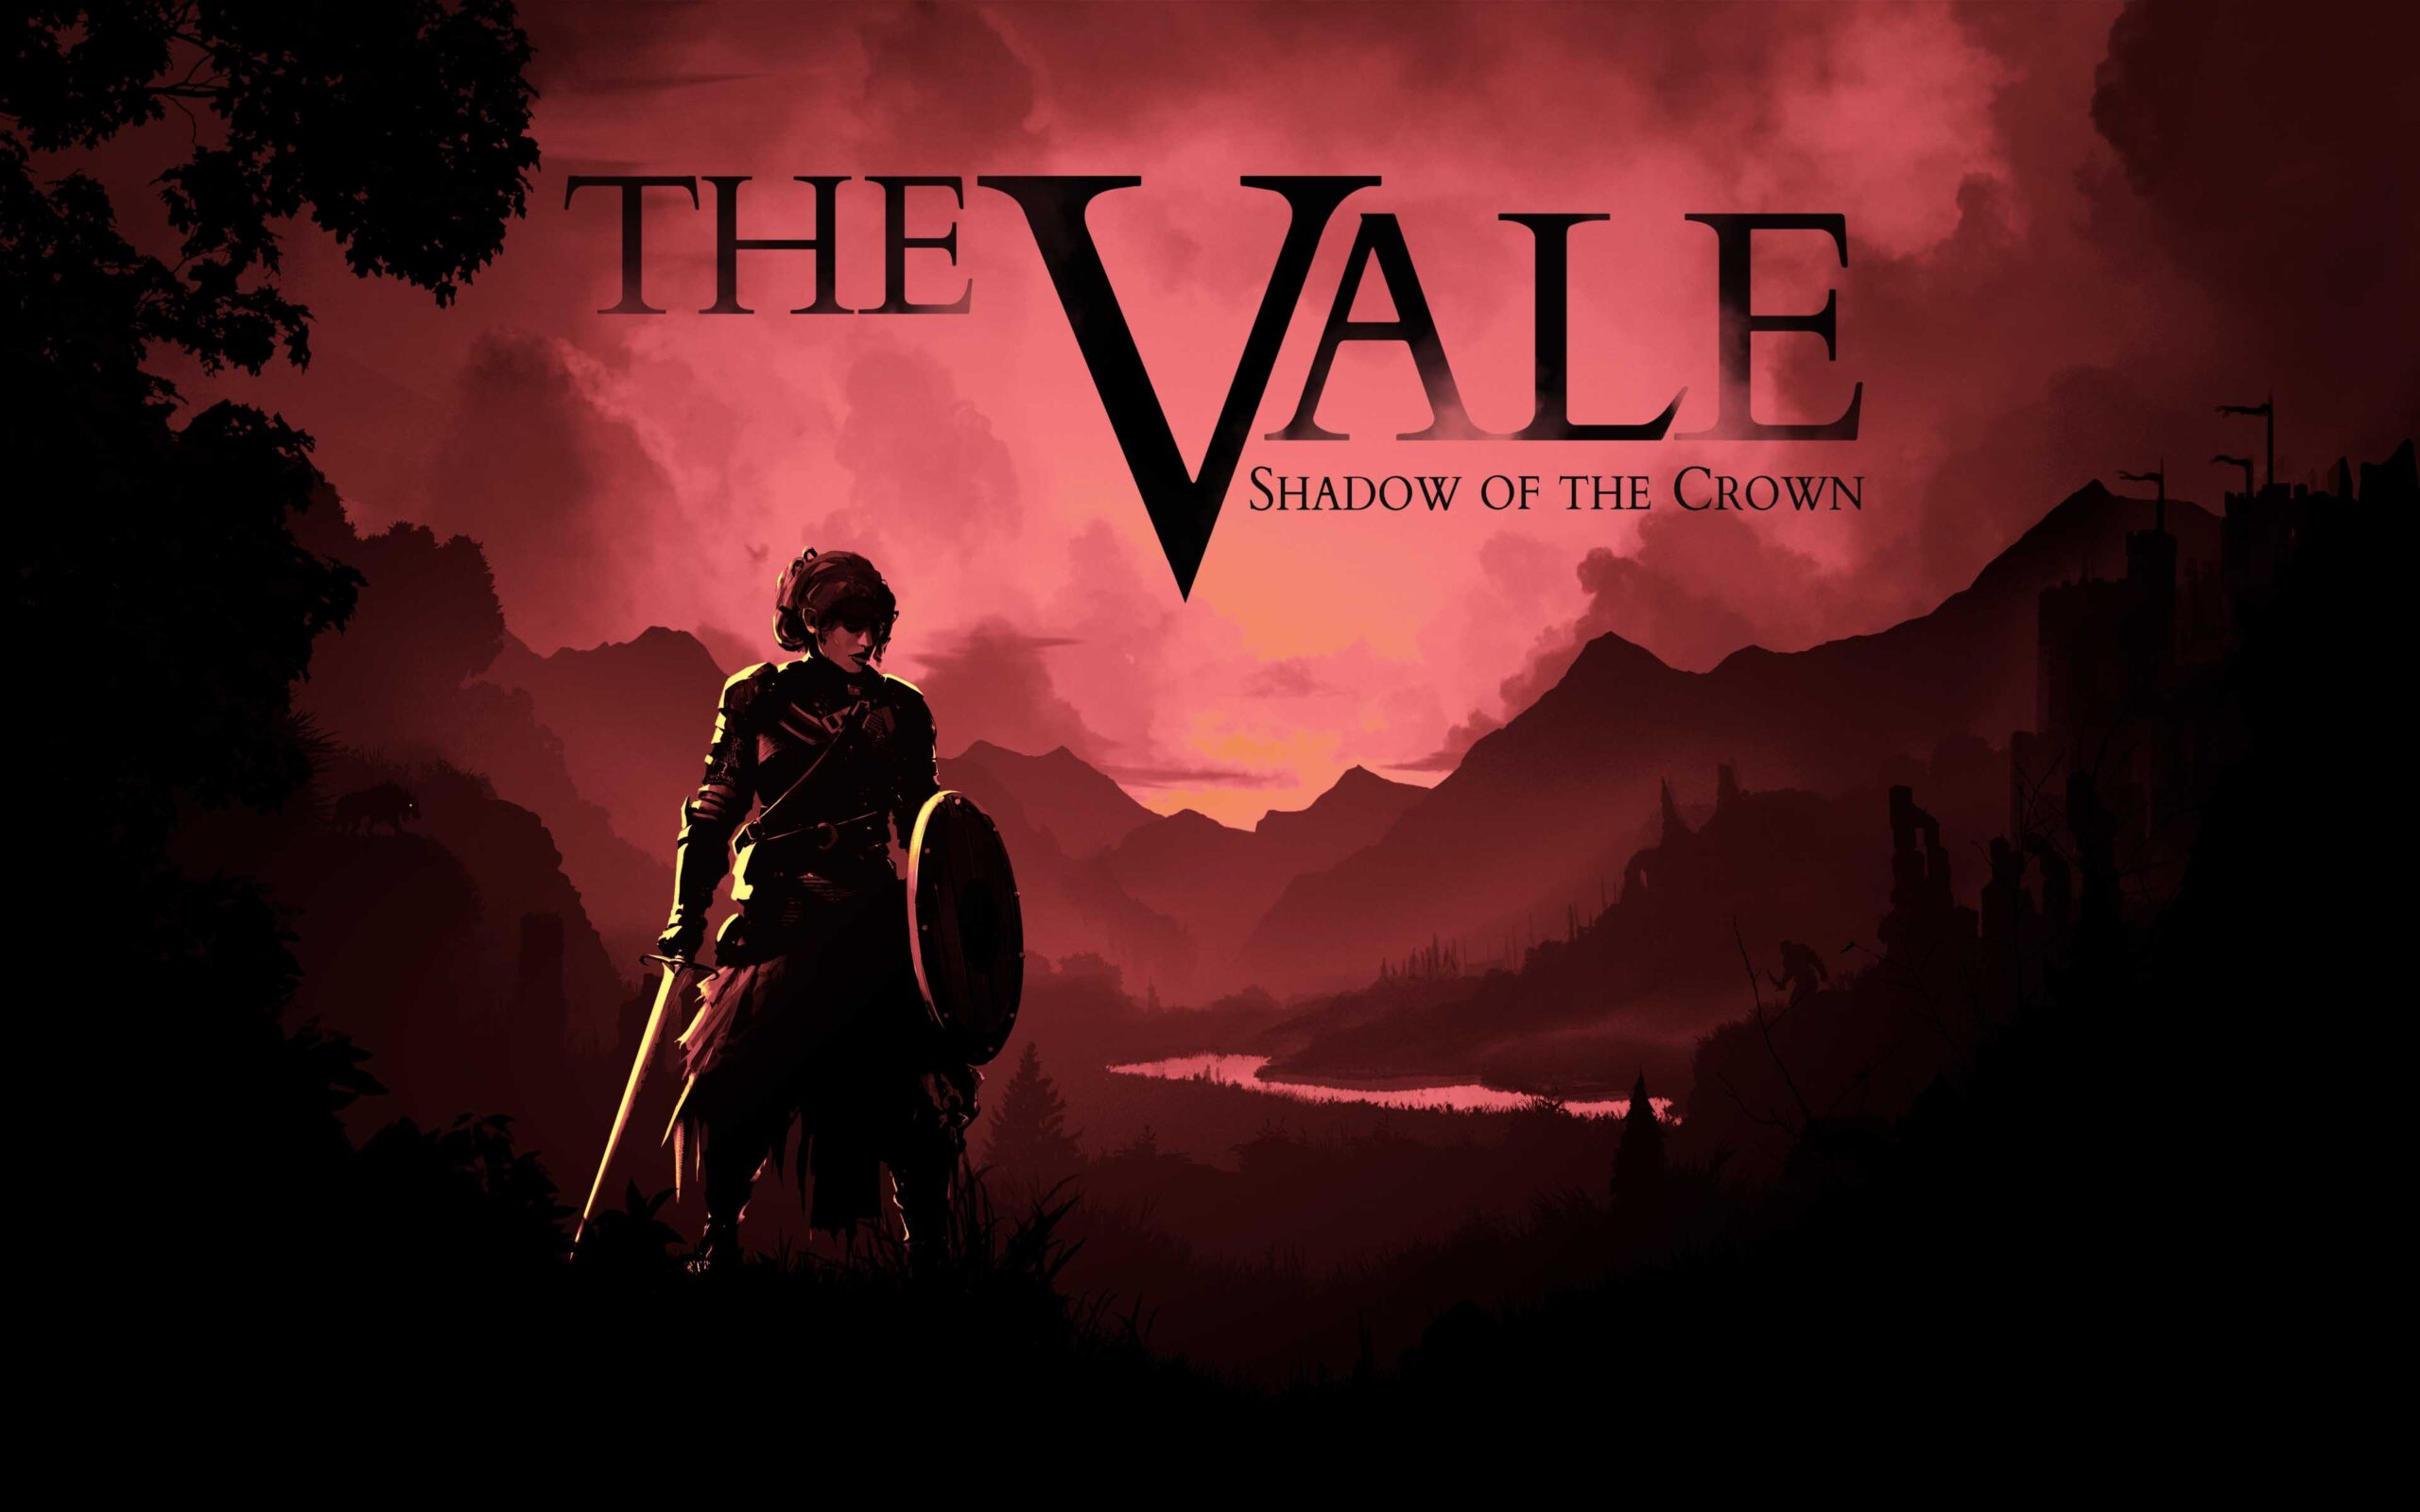 The Vale Shadow of the Crown demo